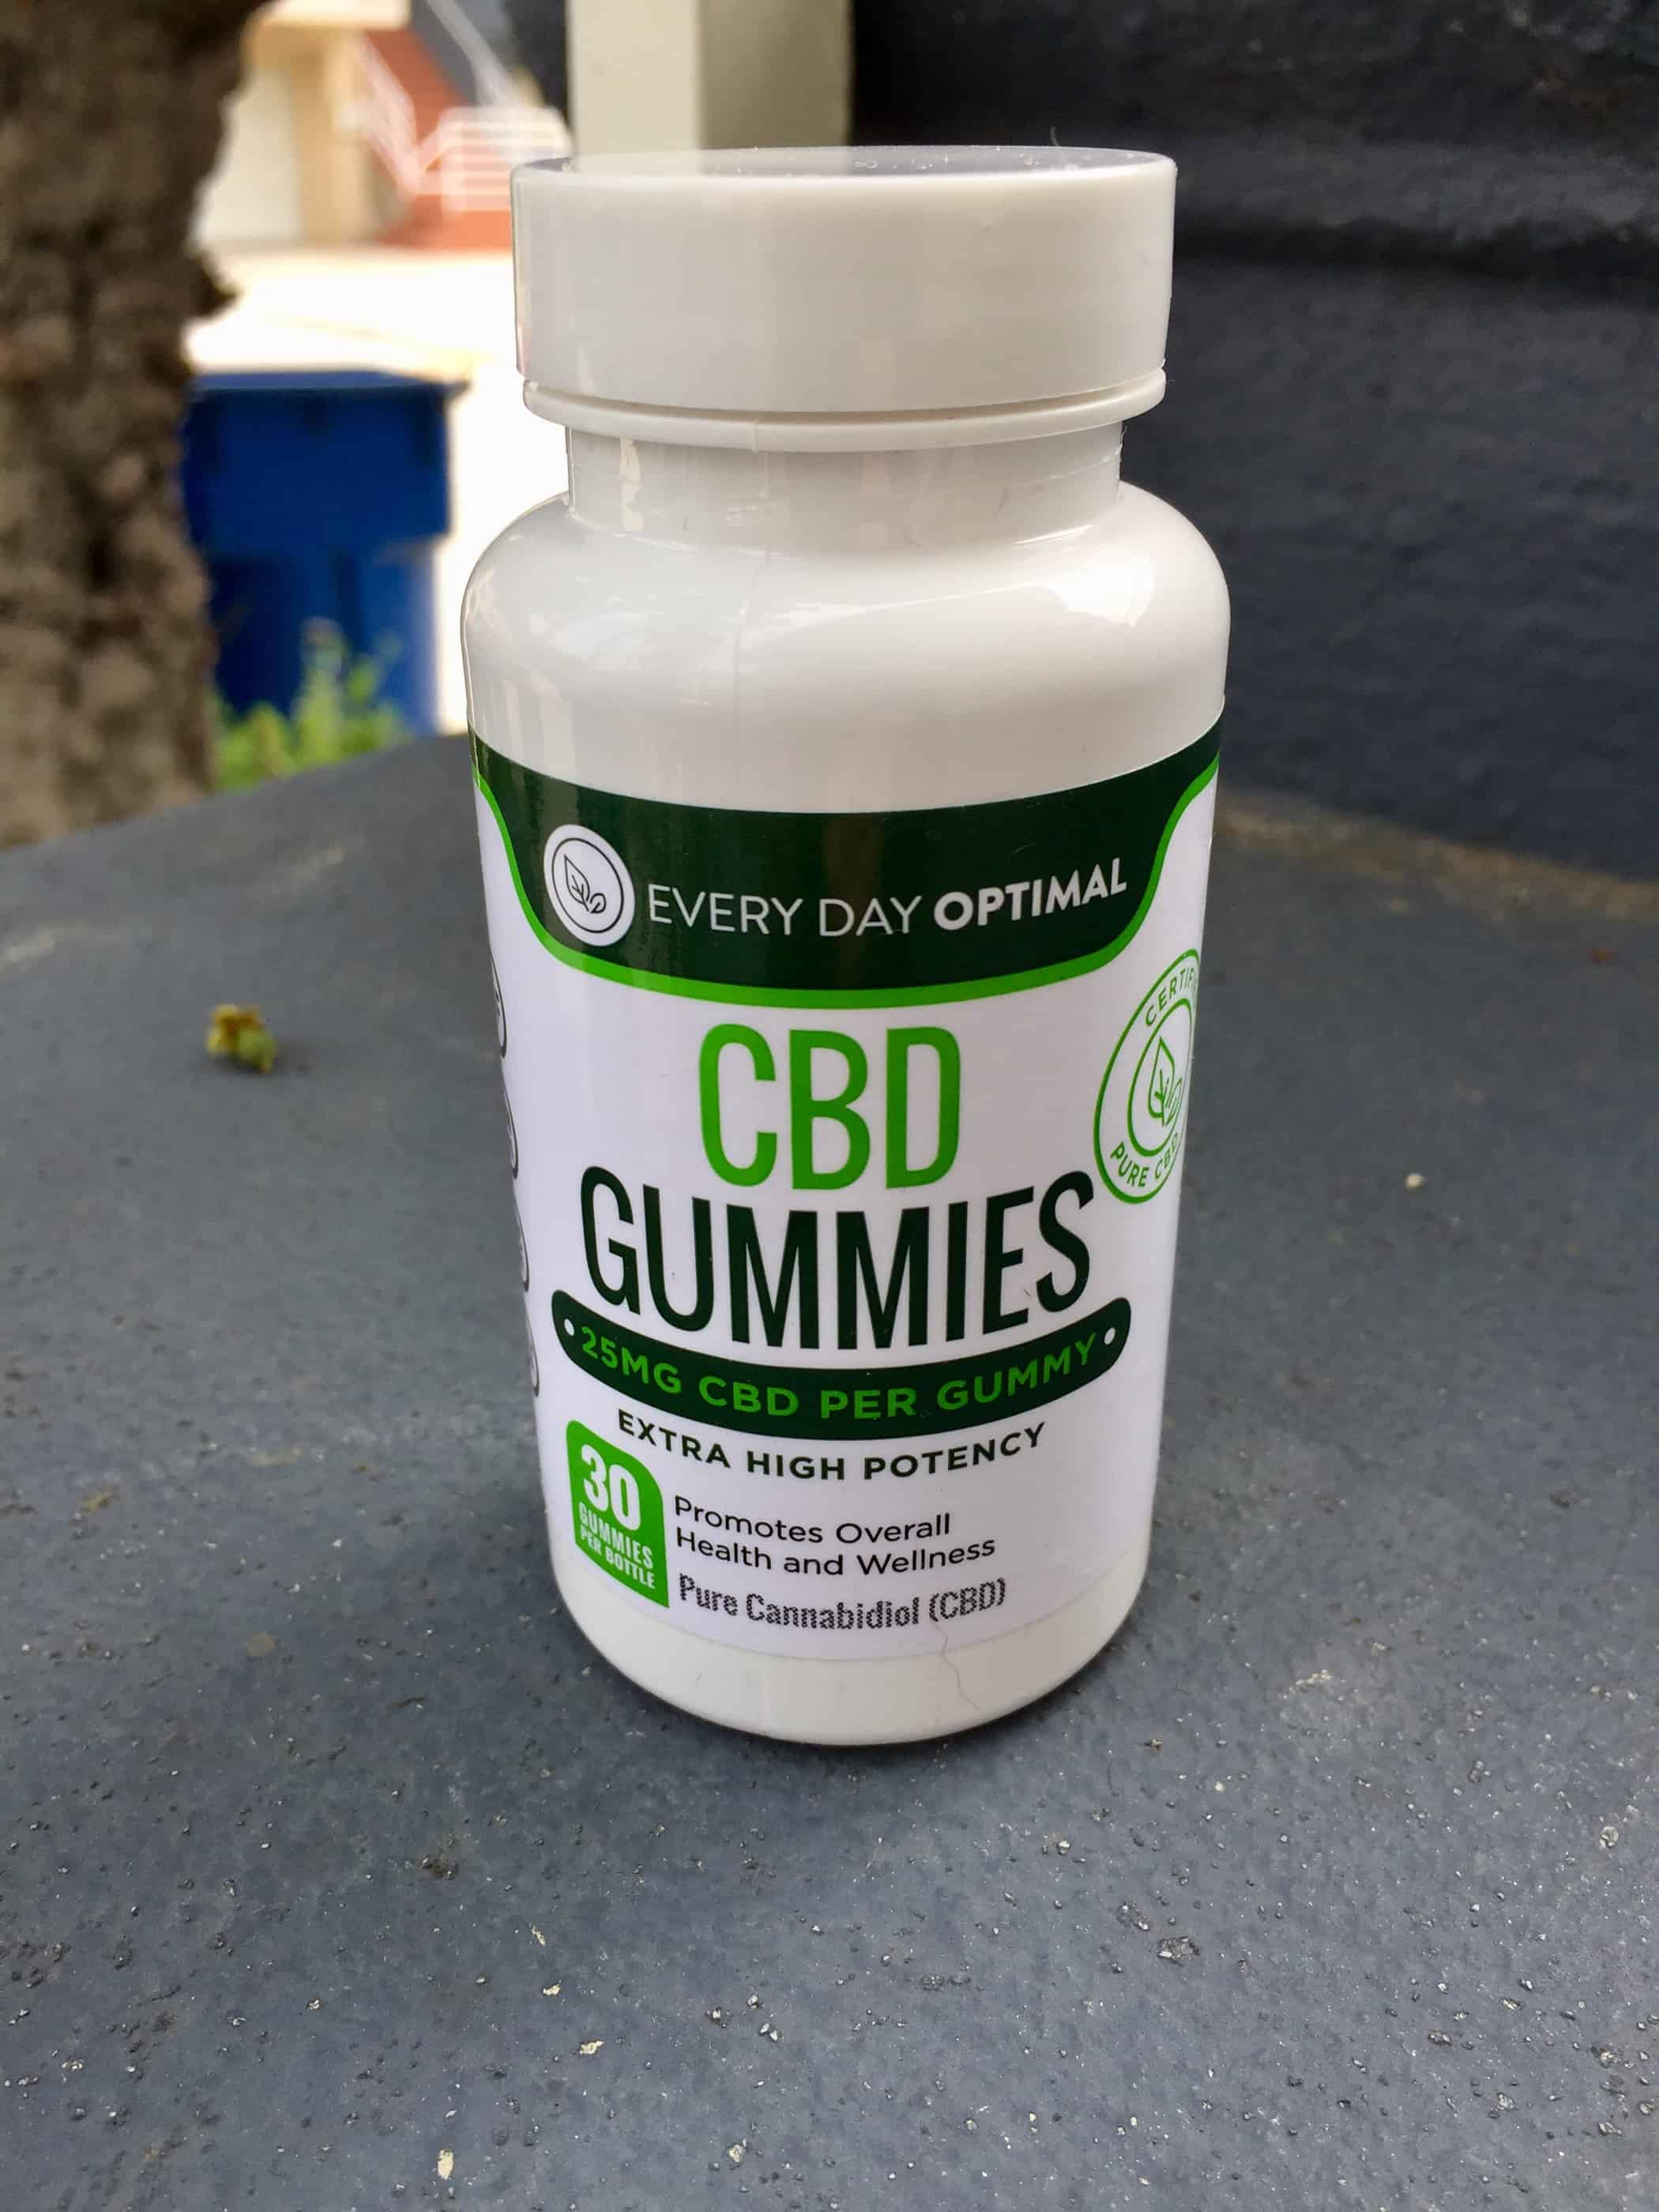 everyday optimal gummies Save On Cannabis review